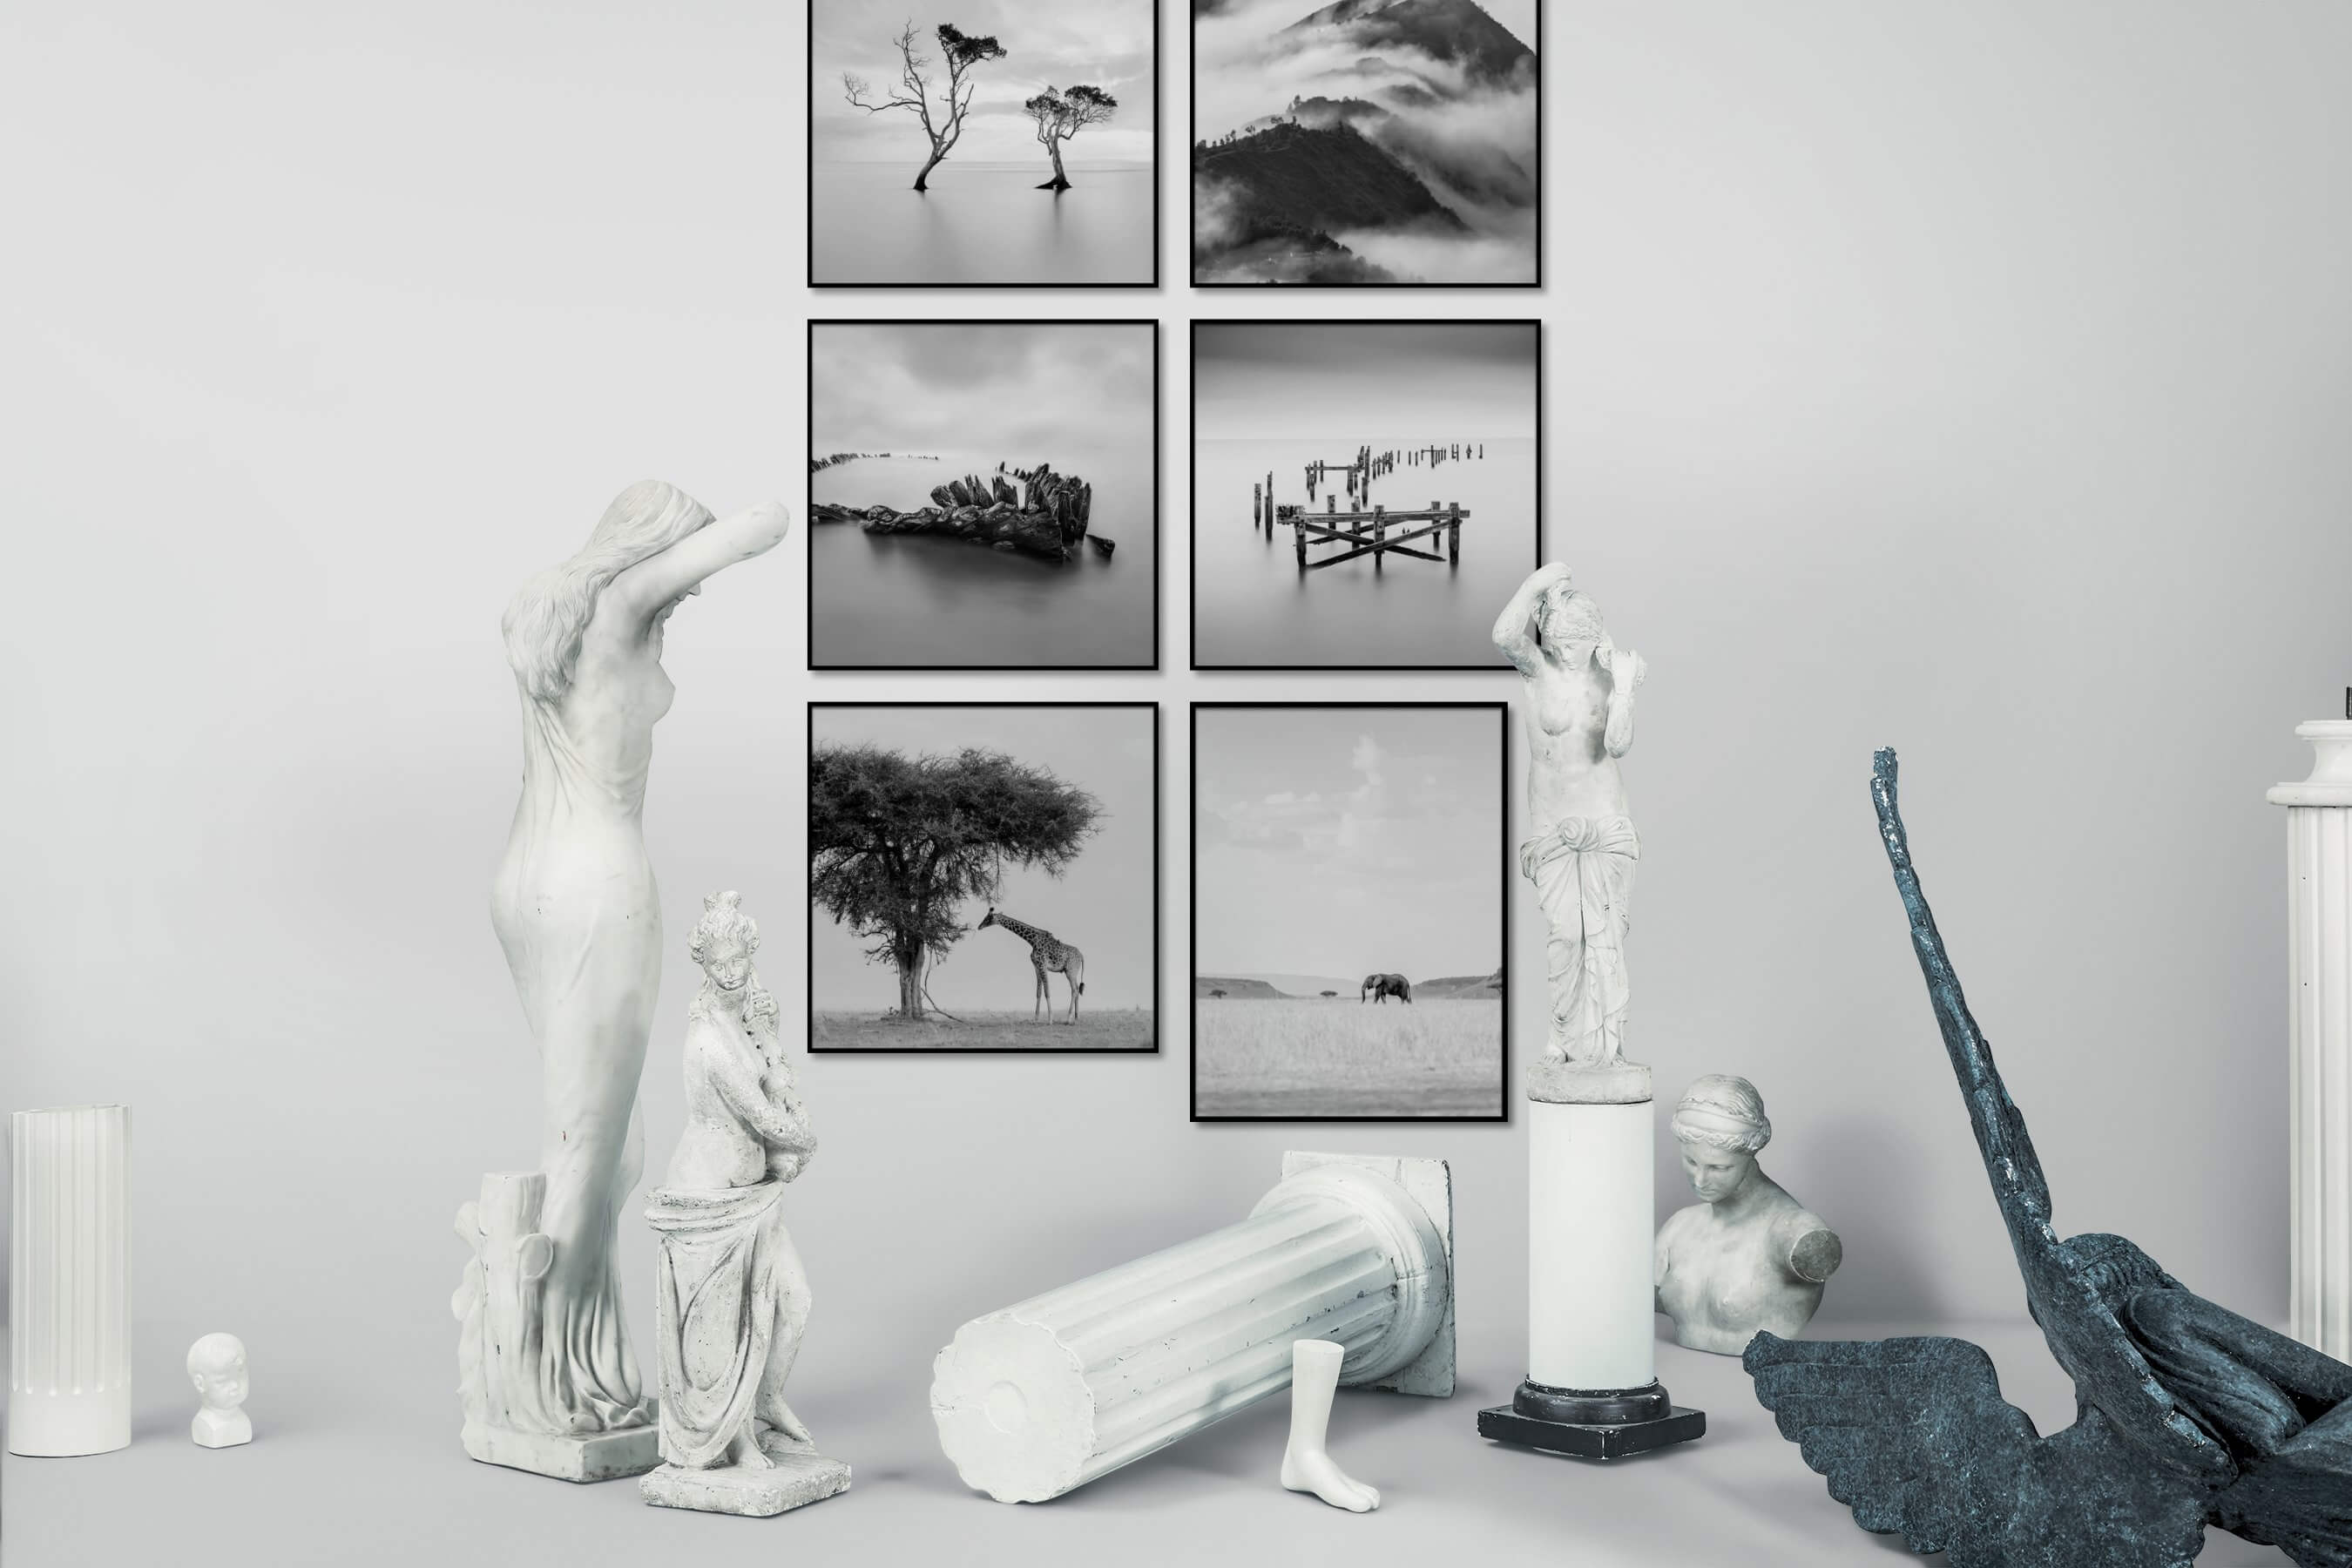 Gallery wall idea with six framed pictures arranged on a wall depicting Black & White, For the Minimalist, Nature, Mindfulness, Beach & Water, and Animals